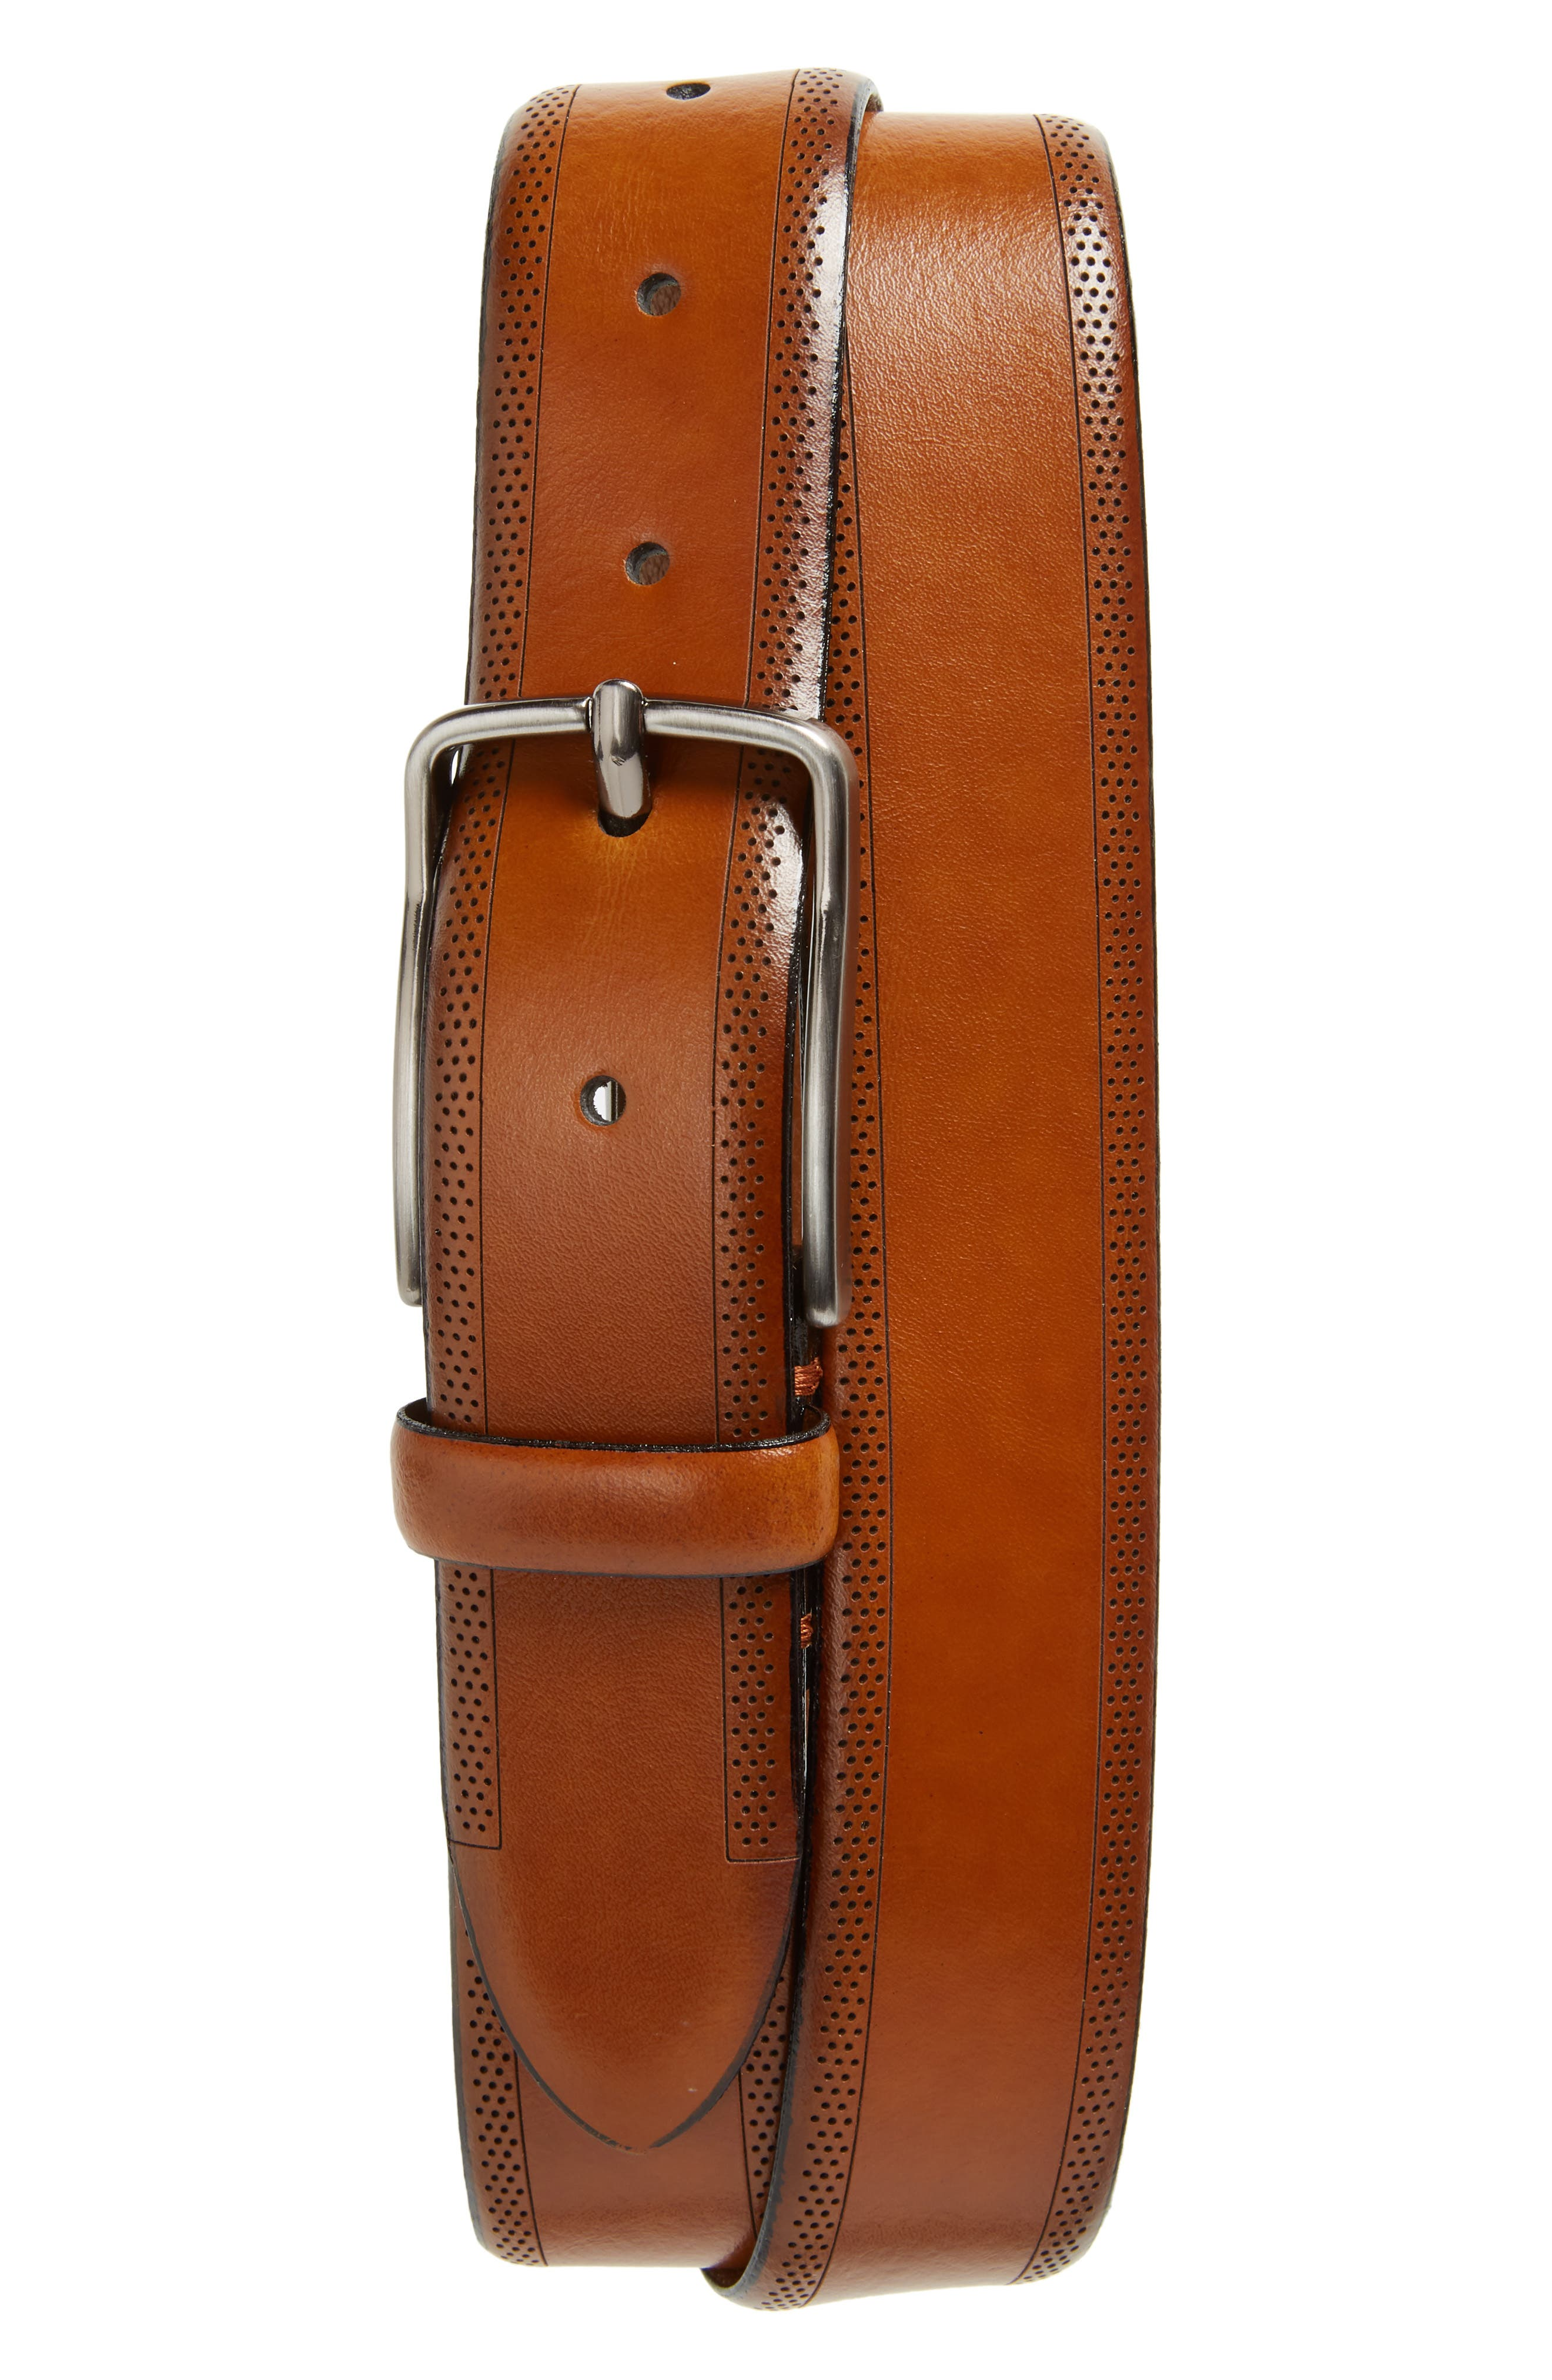 Johnston & Murphy Perforated Leather Belt, Tan